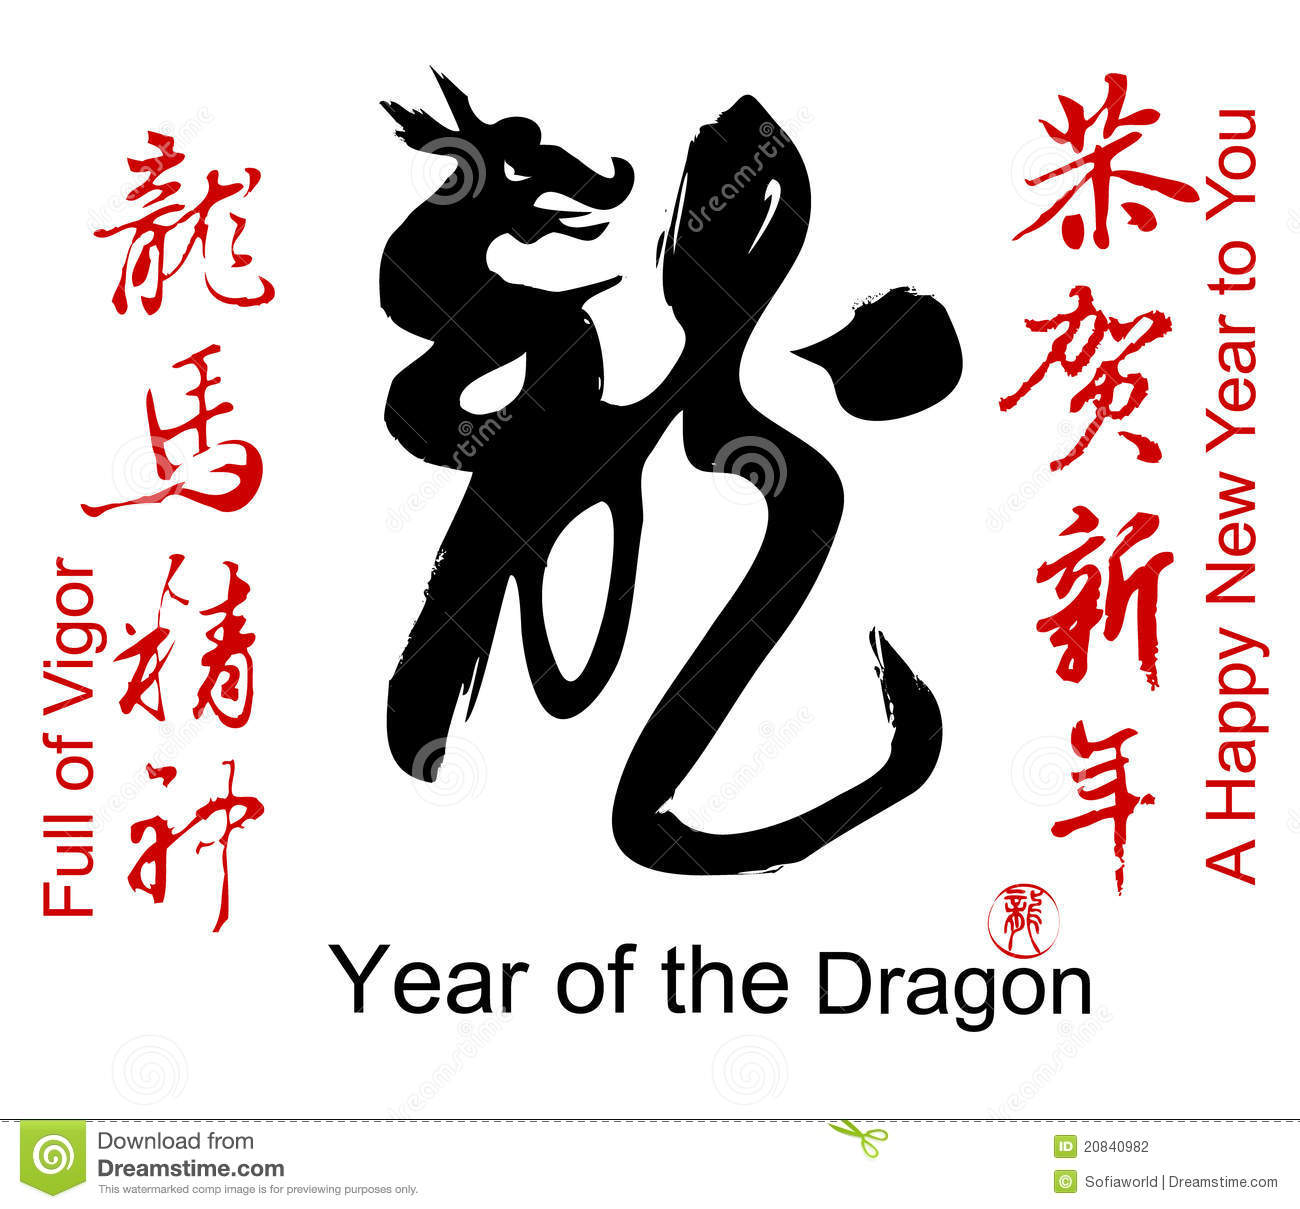 dragon in chinese writing 38 chinese writing dragon free cliparts that you can download to you computer and use in your designs can't find the perfect clip-art contact us with a description of the clipart you are searching for and we'll help you find it.